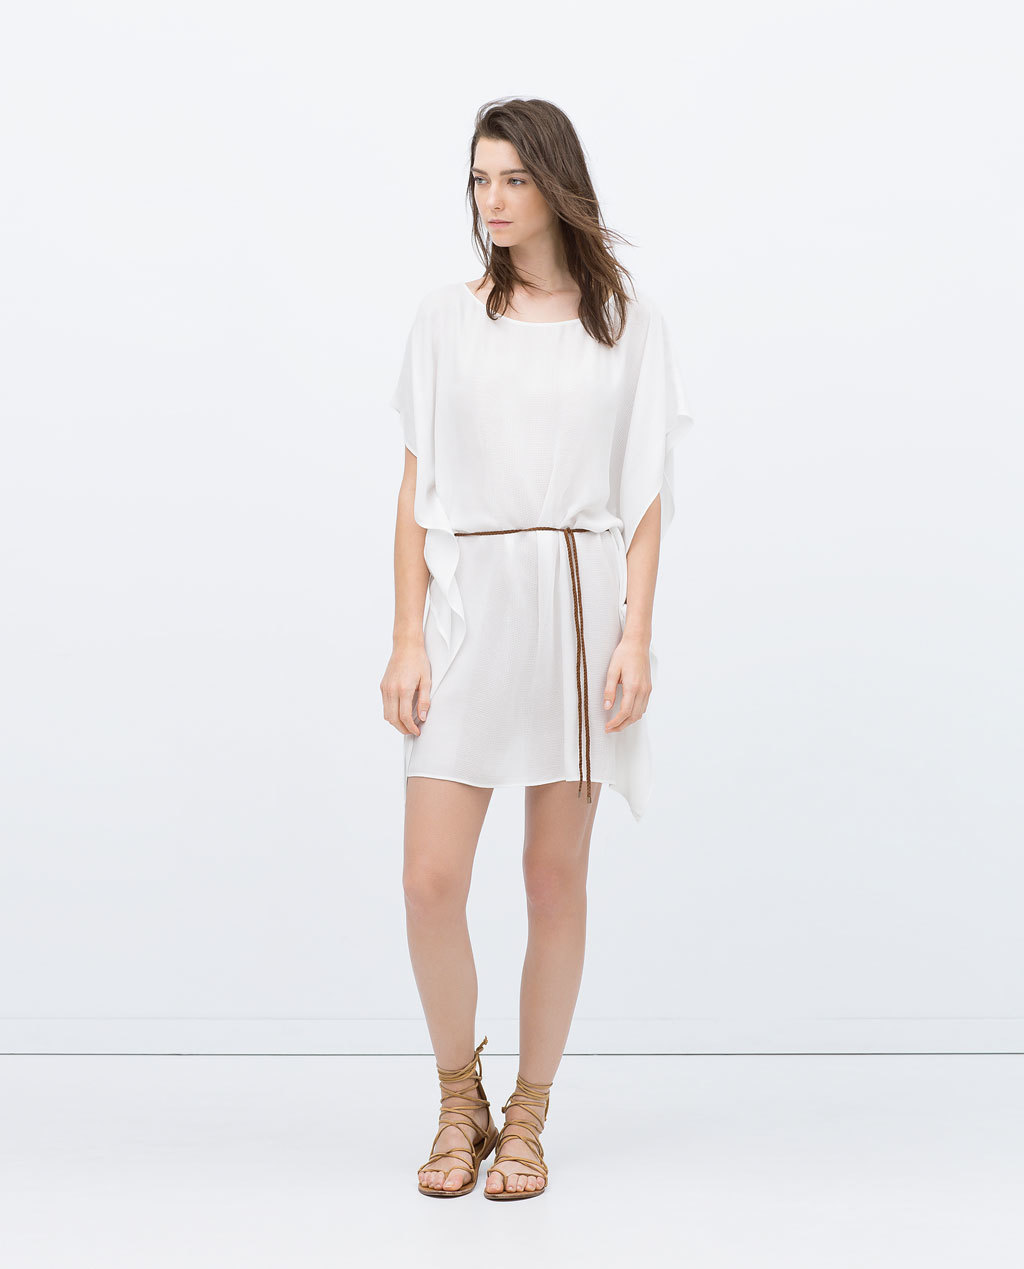 Full Tunic With Plaited Belt - style: tunic; length: mid thigh; neckline: round neck; sleeve style: dolman/batwing; fit: loose; pattern: plain; waist detail: belted waist/tie at waist/drawstring; predominant colour: white; occasions: casual, holiday; sleeve length: half sleeve; texture group: cotton feel fabrics; pattern type: fabric; season: s/s 2015; wardrobe: basic